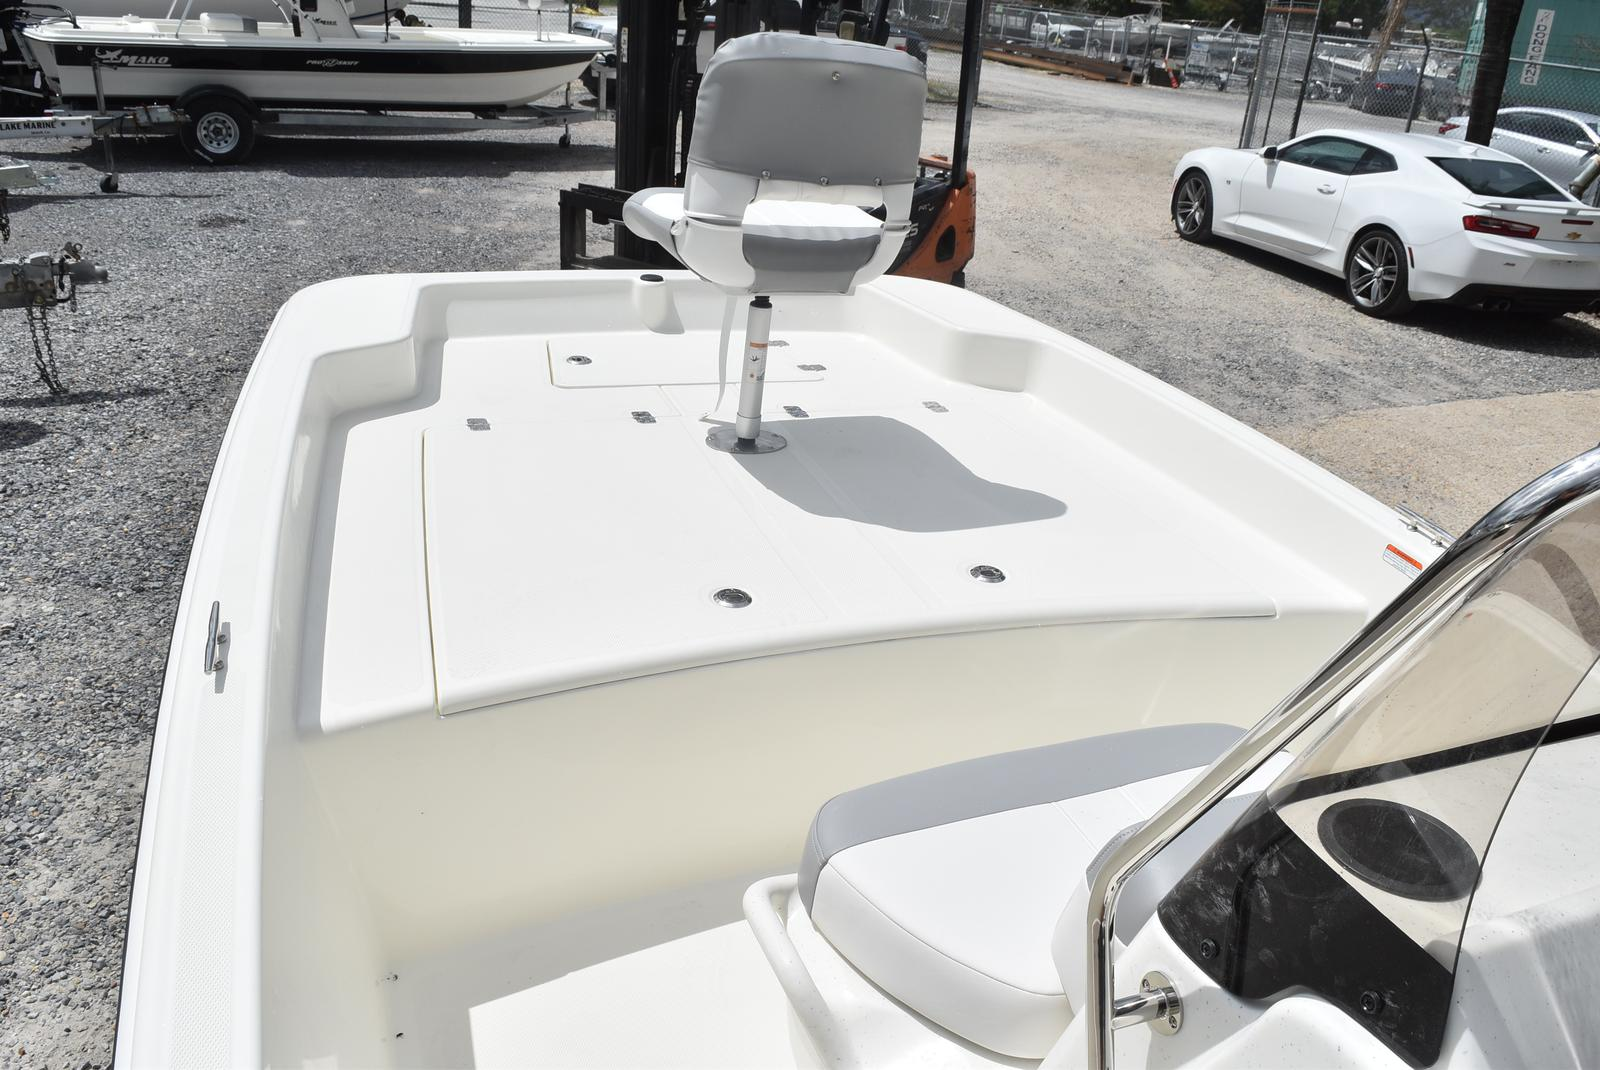 2020 Mako boat for sale, model of the boat is Pro Skiff 17, 75 ELPT & Image # 424 of 702